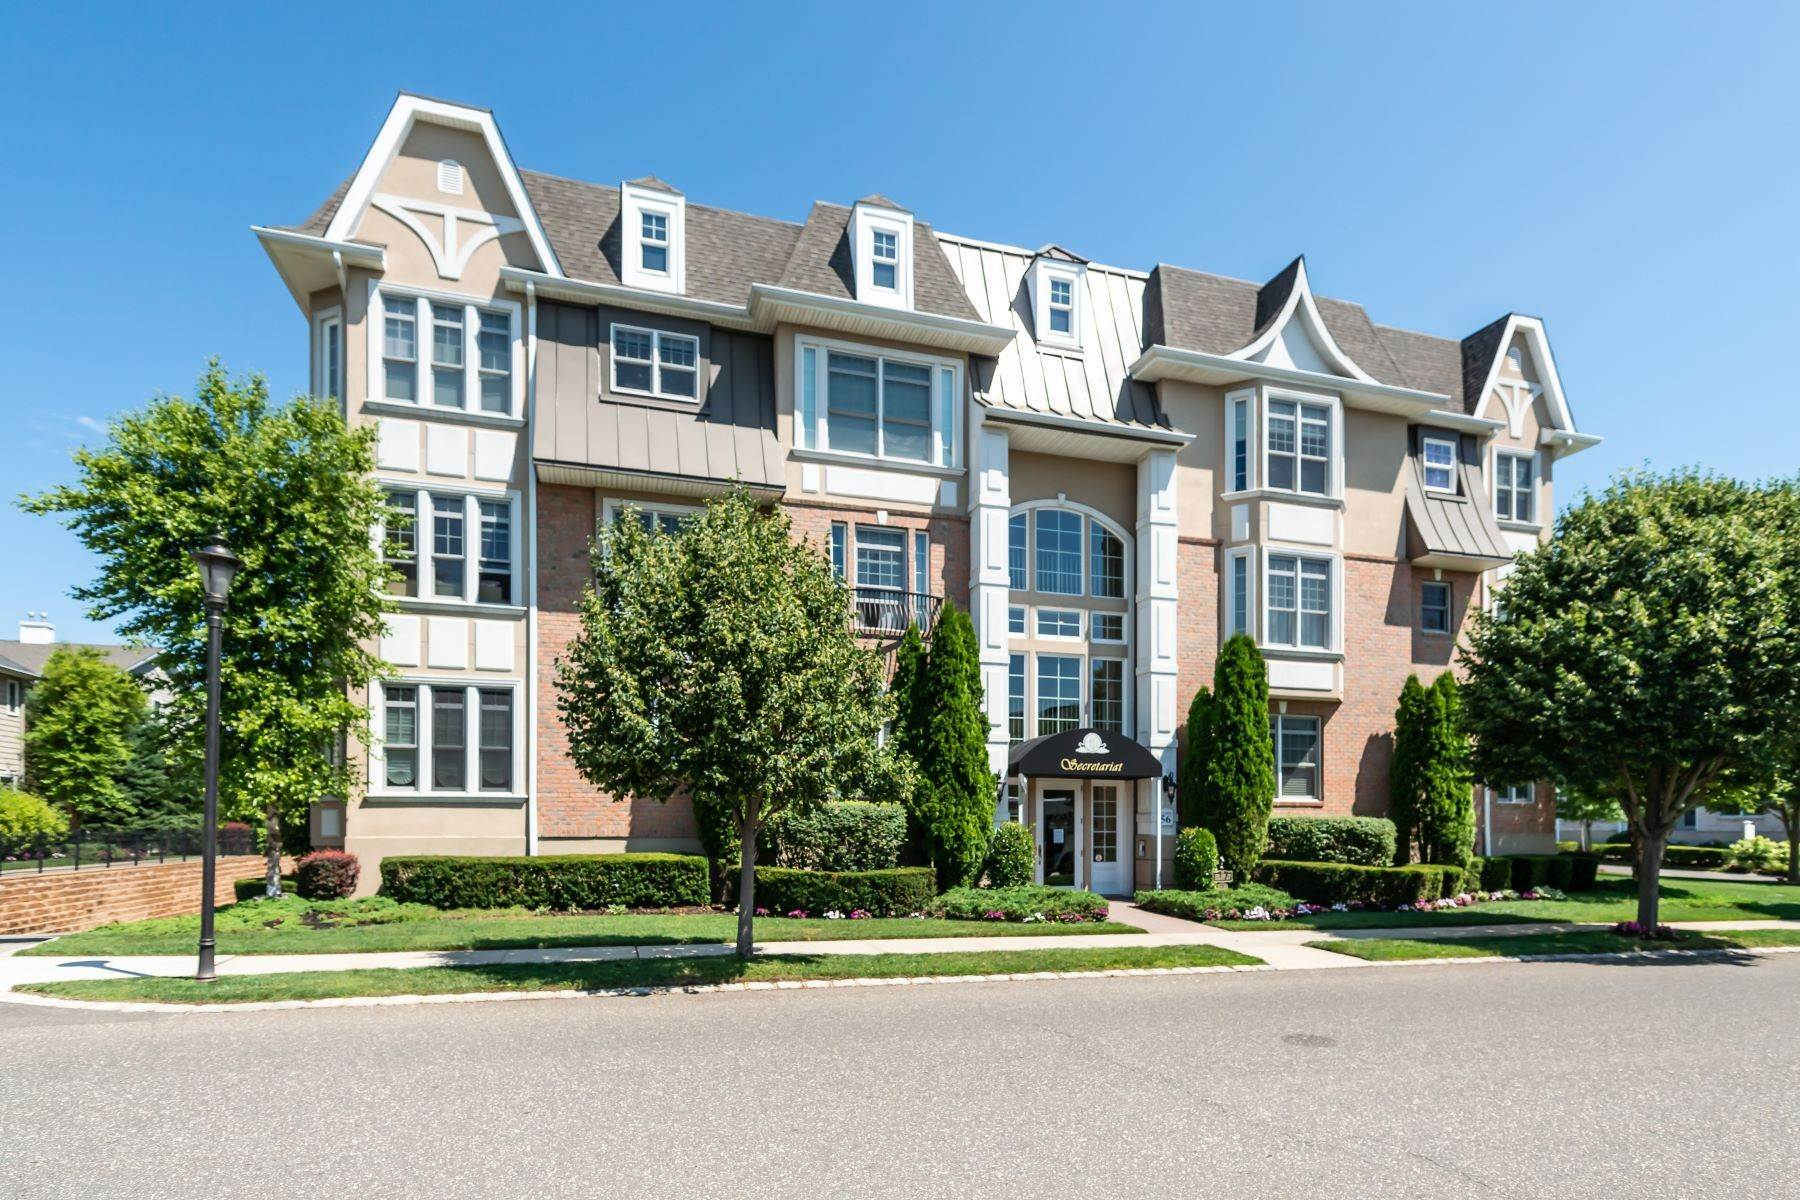 Condominiums for Sale at 1109 Roosevelt Way, Westbury, Ny, 11590 1109 Roosevelt Way Westbury, New York 11590 United States